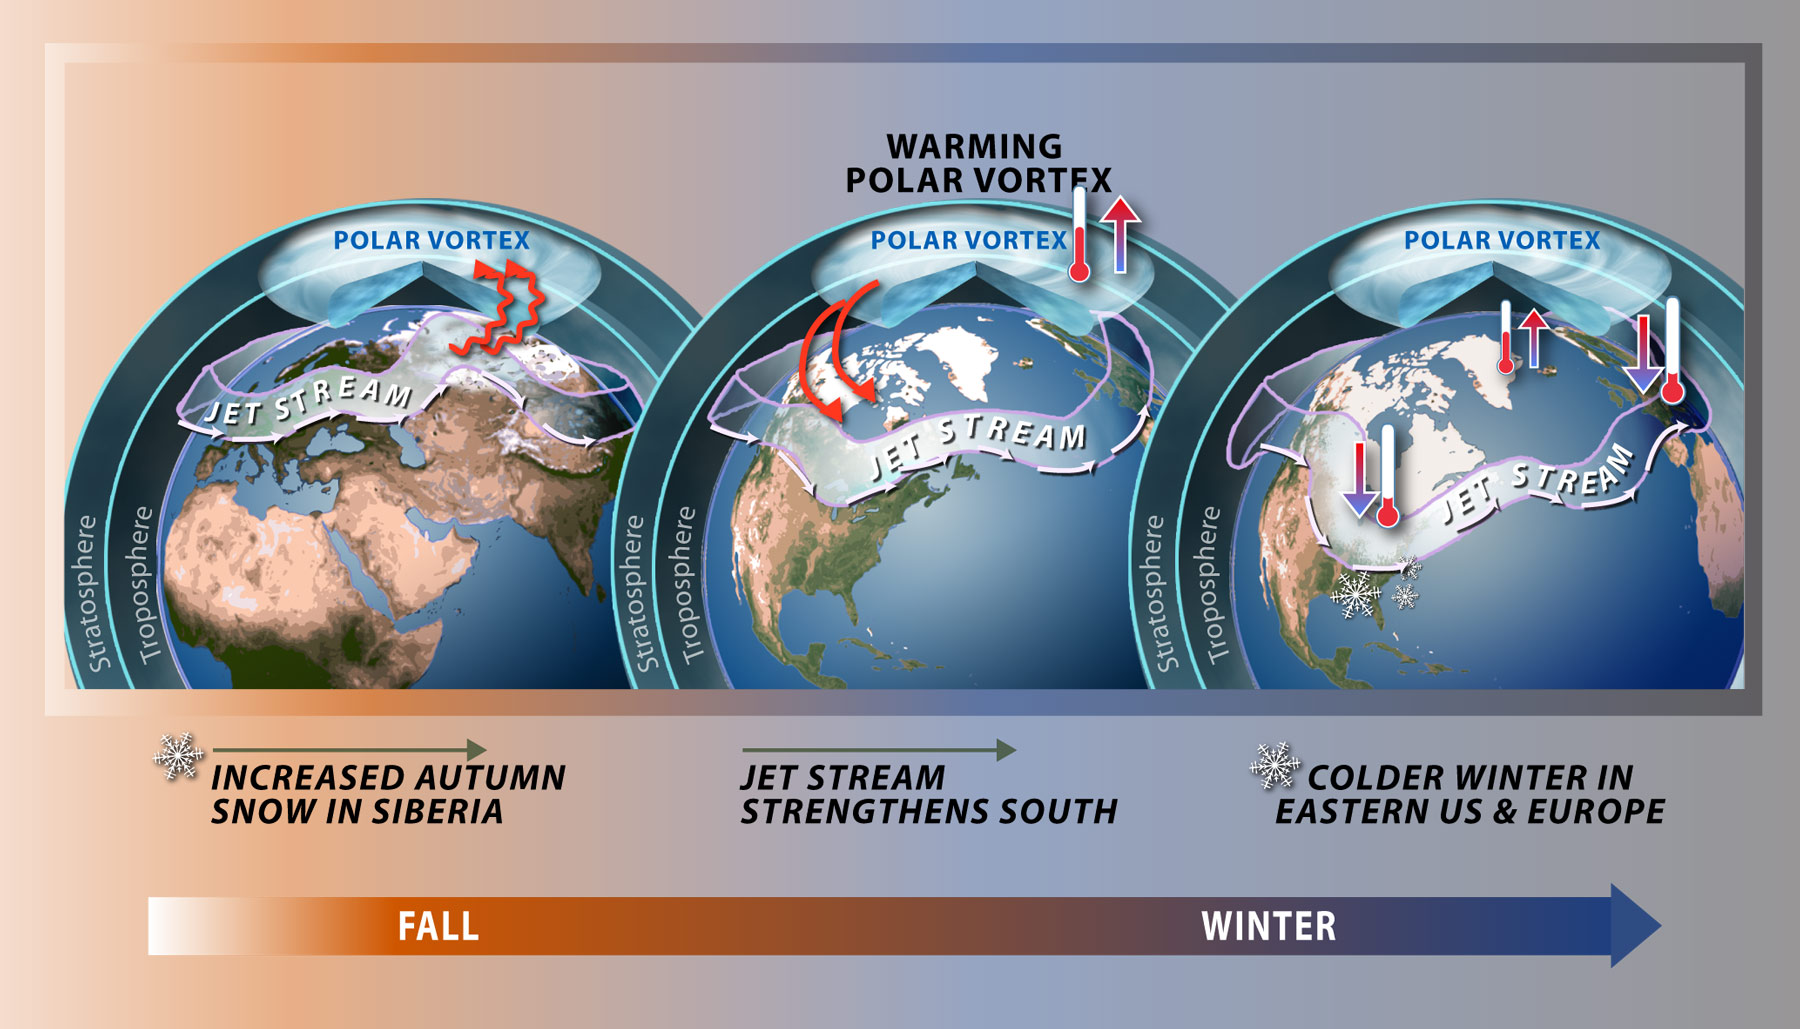 What Is The Polar Vortex? - Blog by Nick Finnis